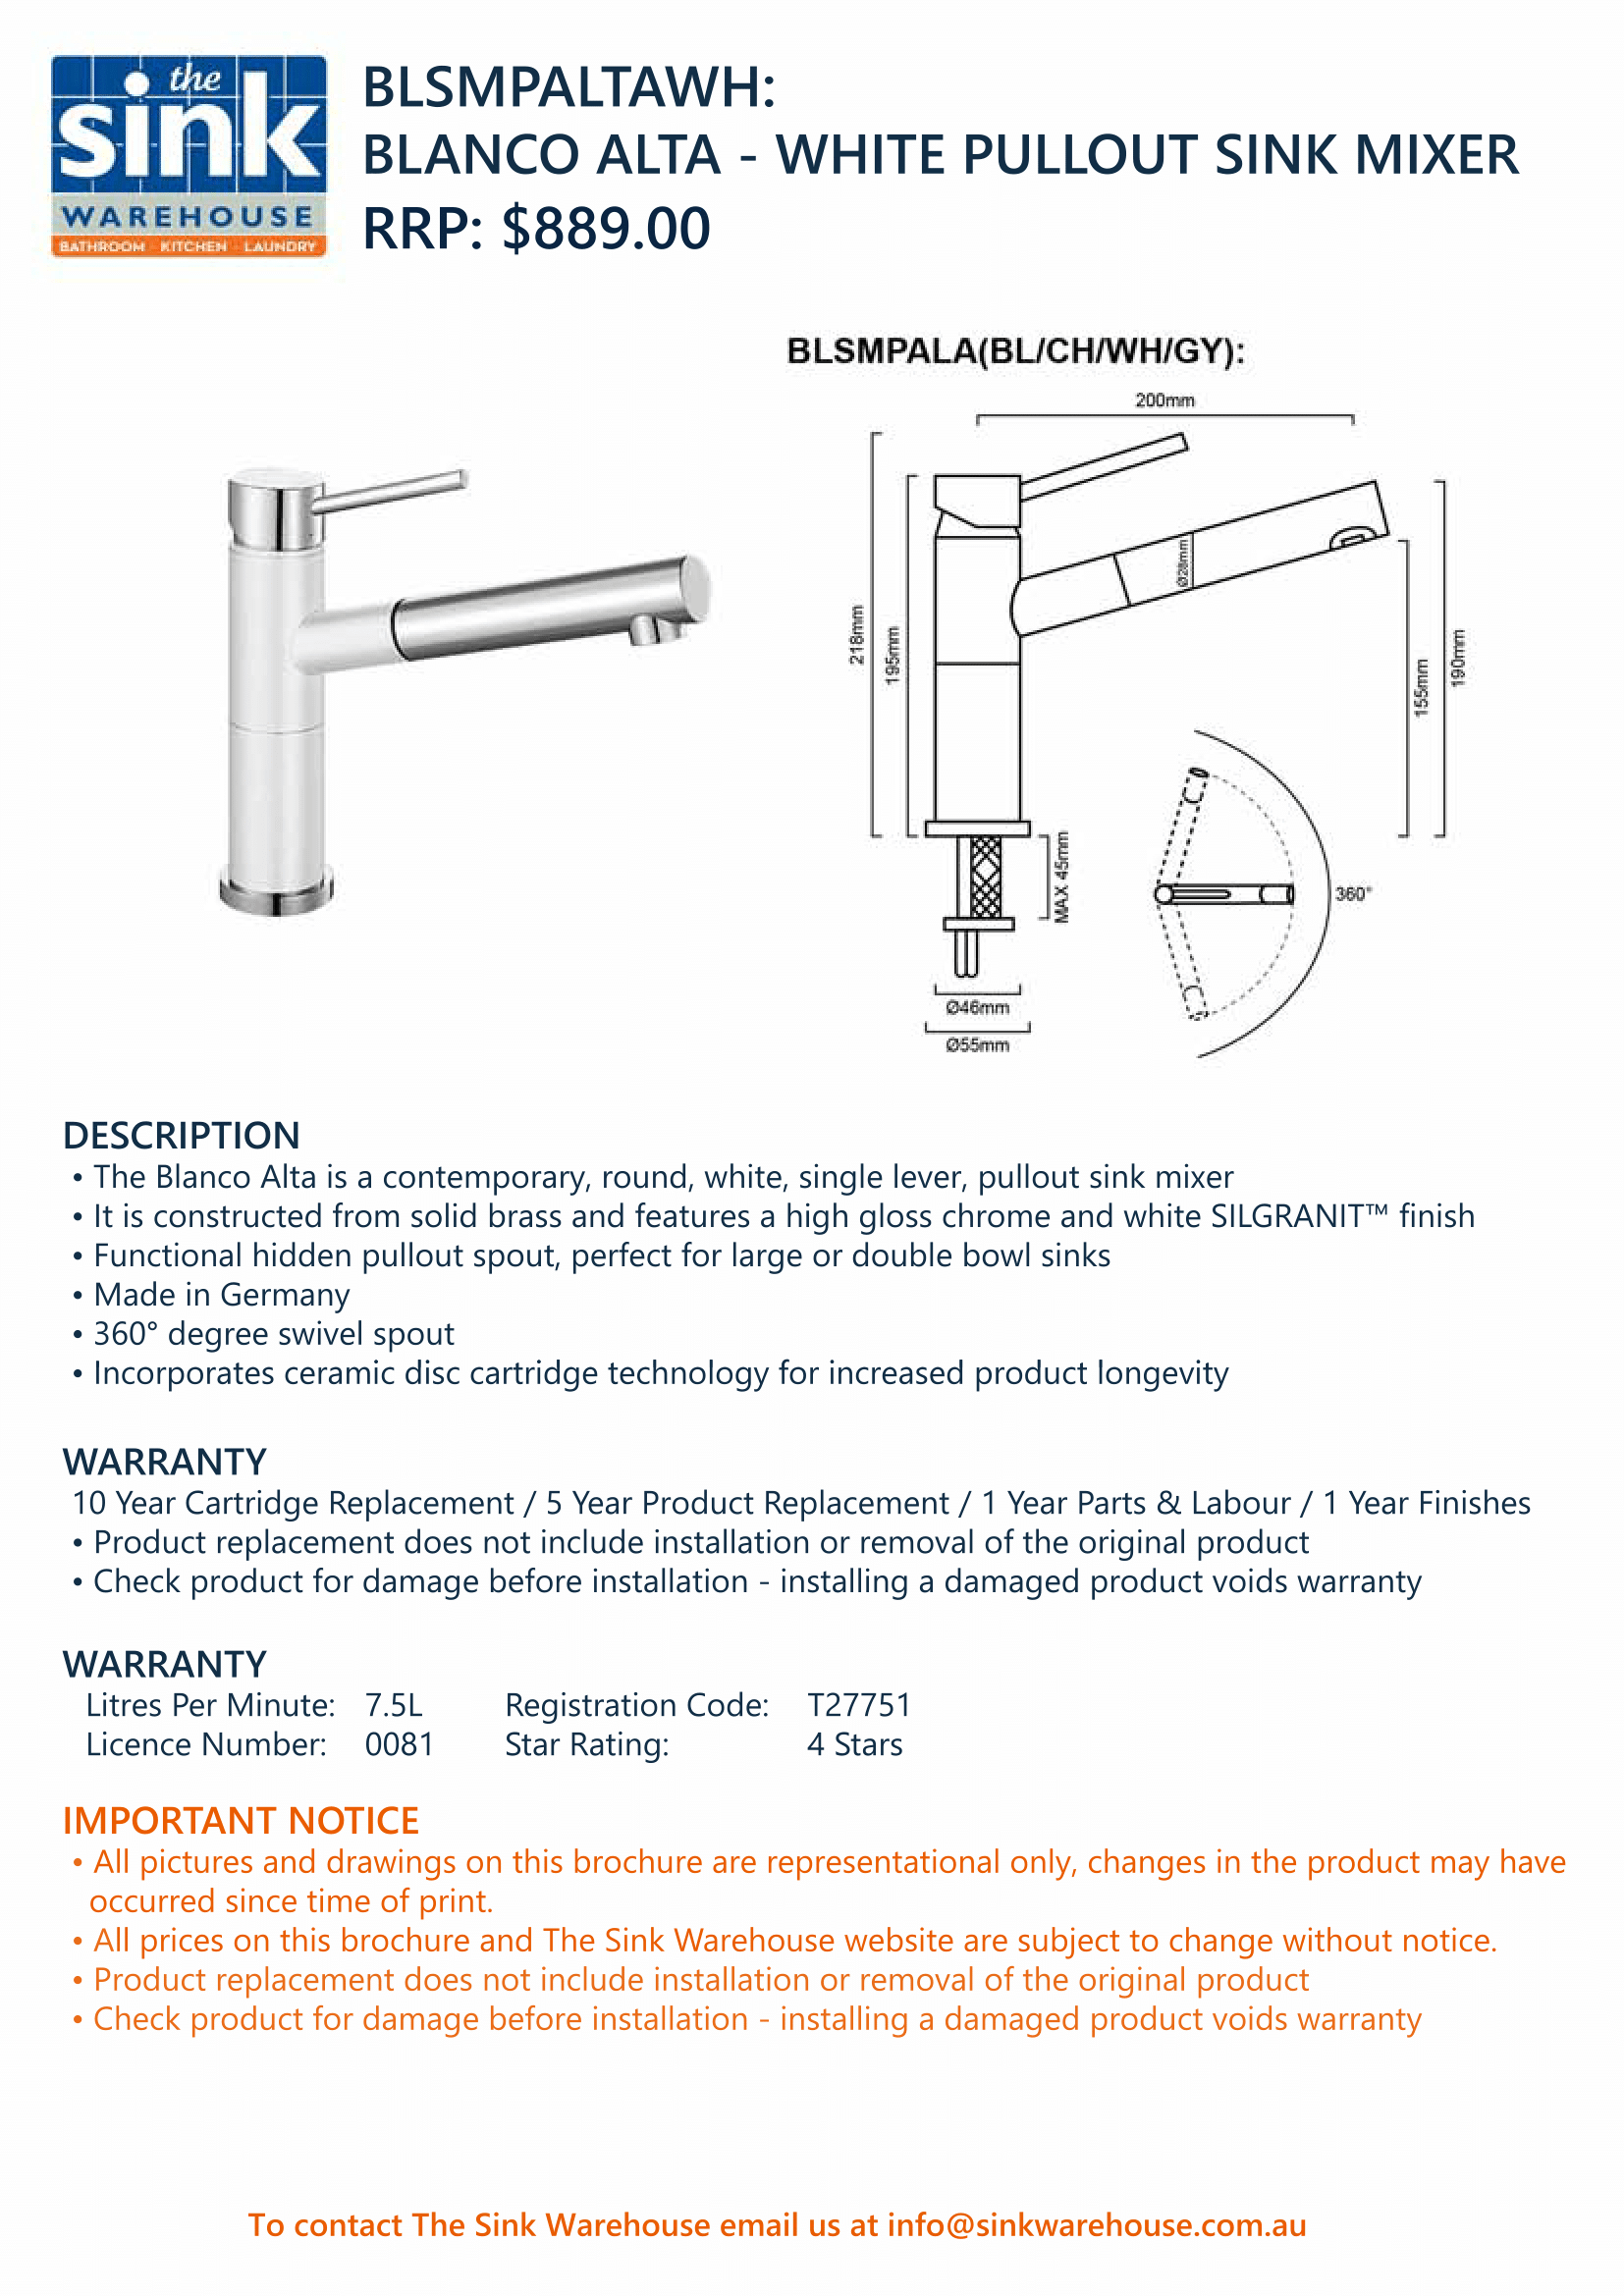 blsmpaltawh-product-spec-sheet-1.png